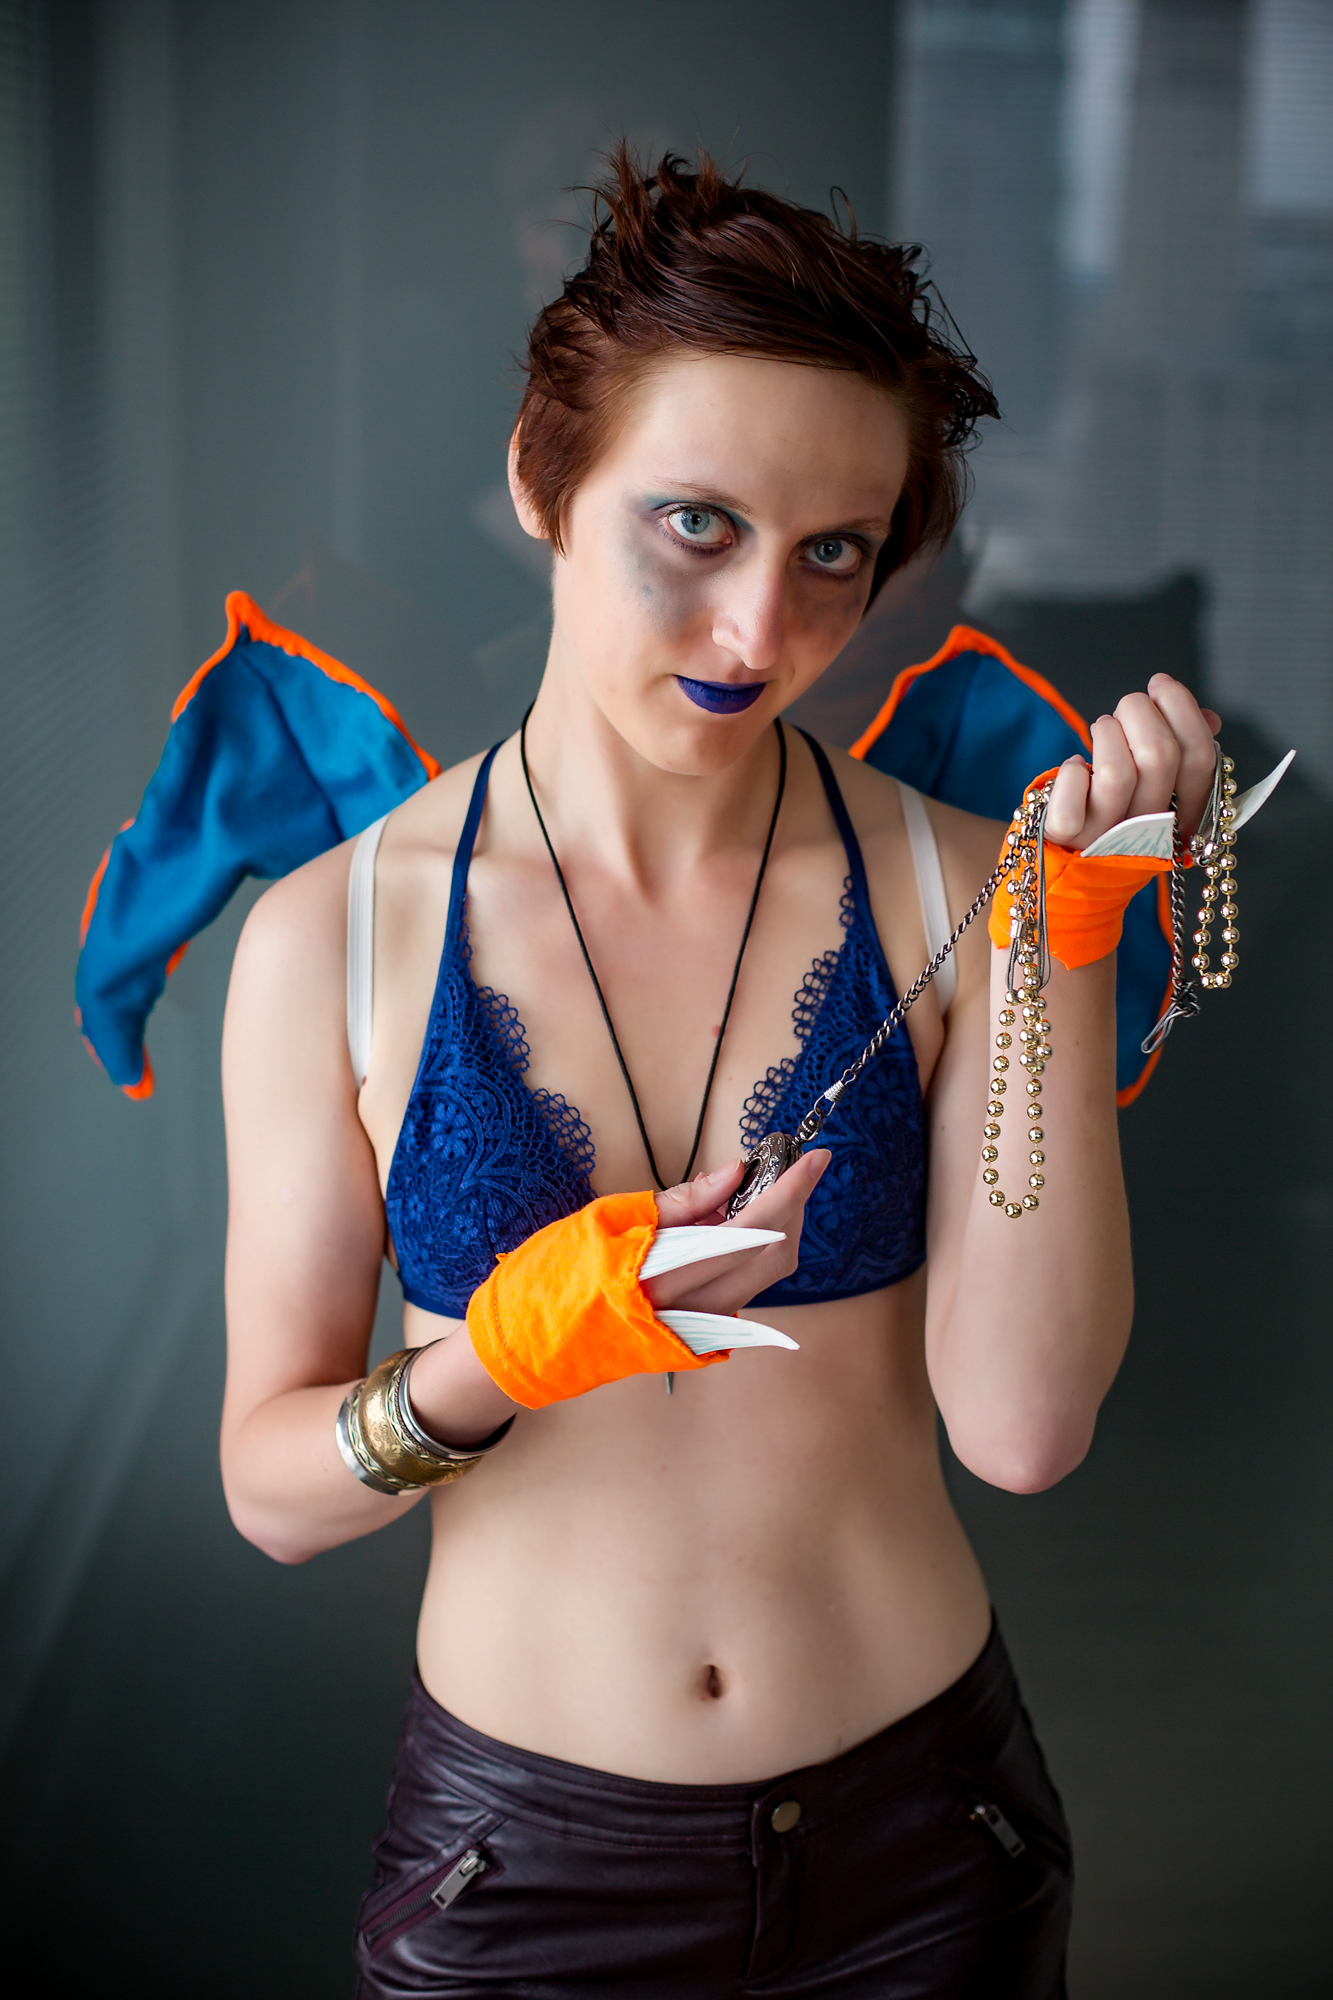 Check out the rest of this dragon-tastic set by backing at  http://patreon.com/hellapositive !